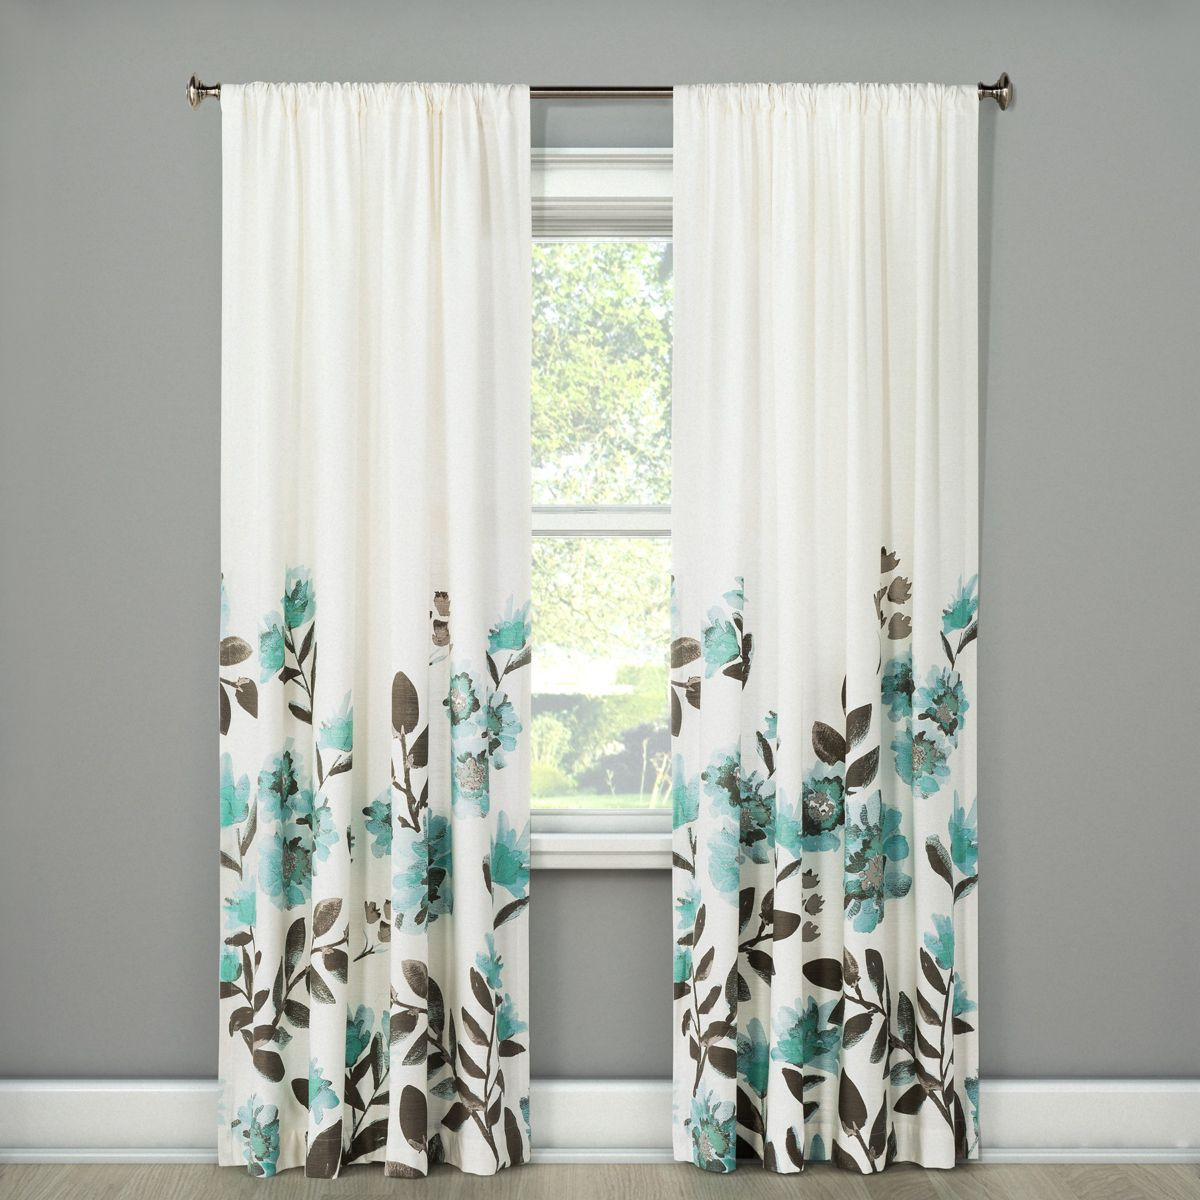 curtain panels with flowers climbing up hanging on window